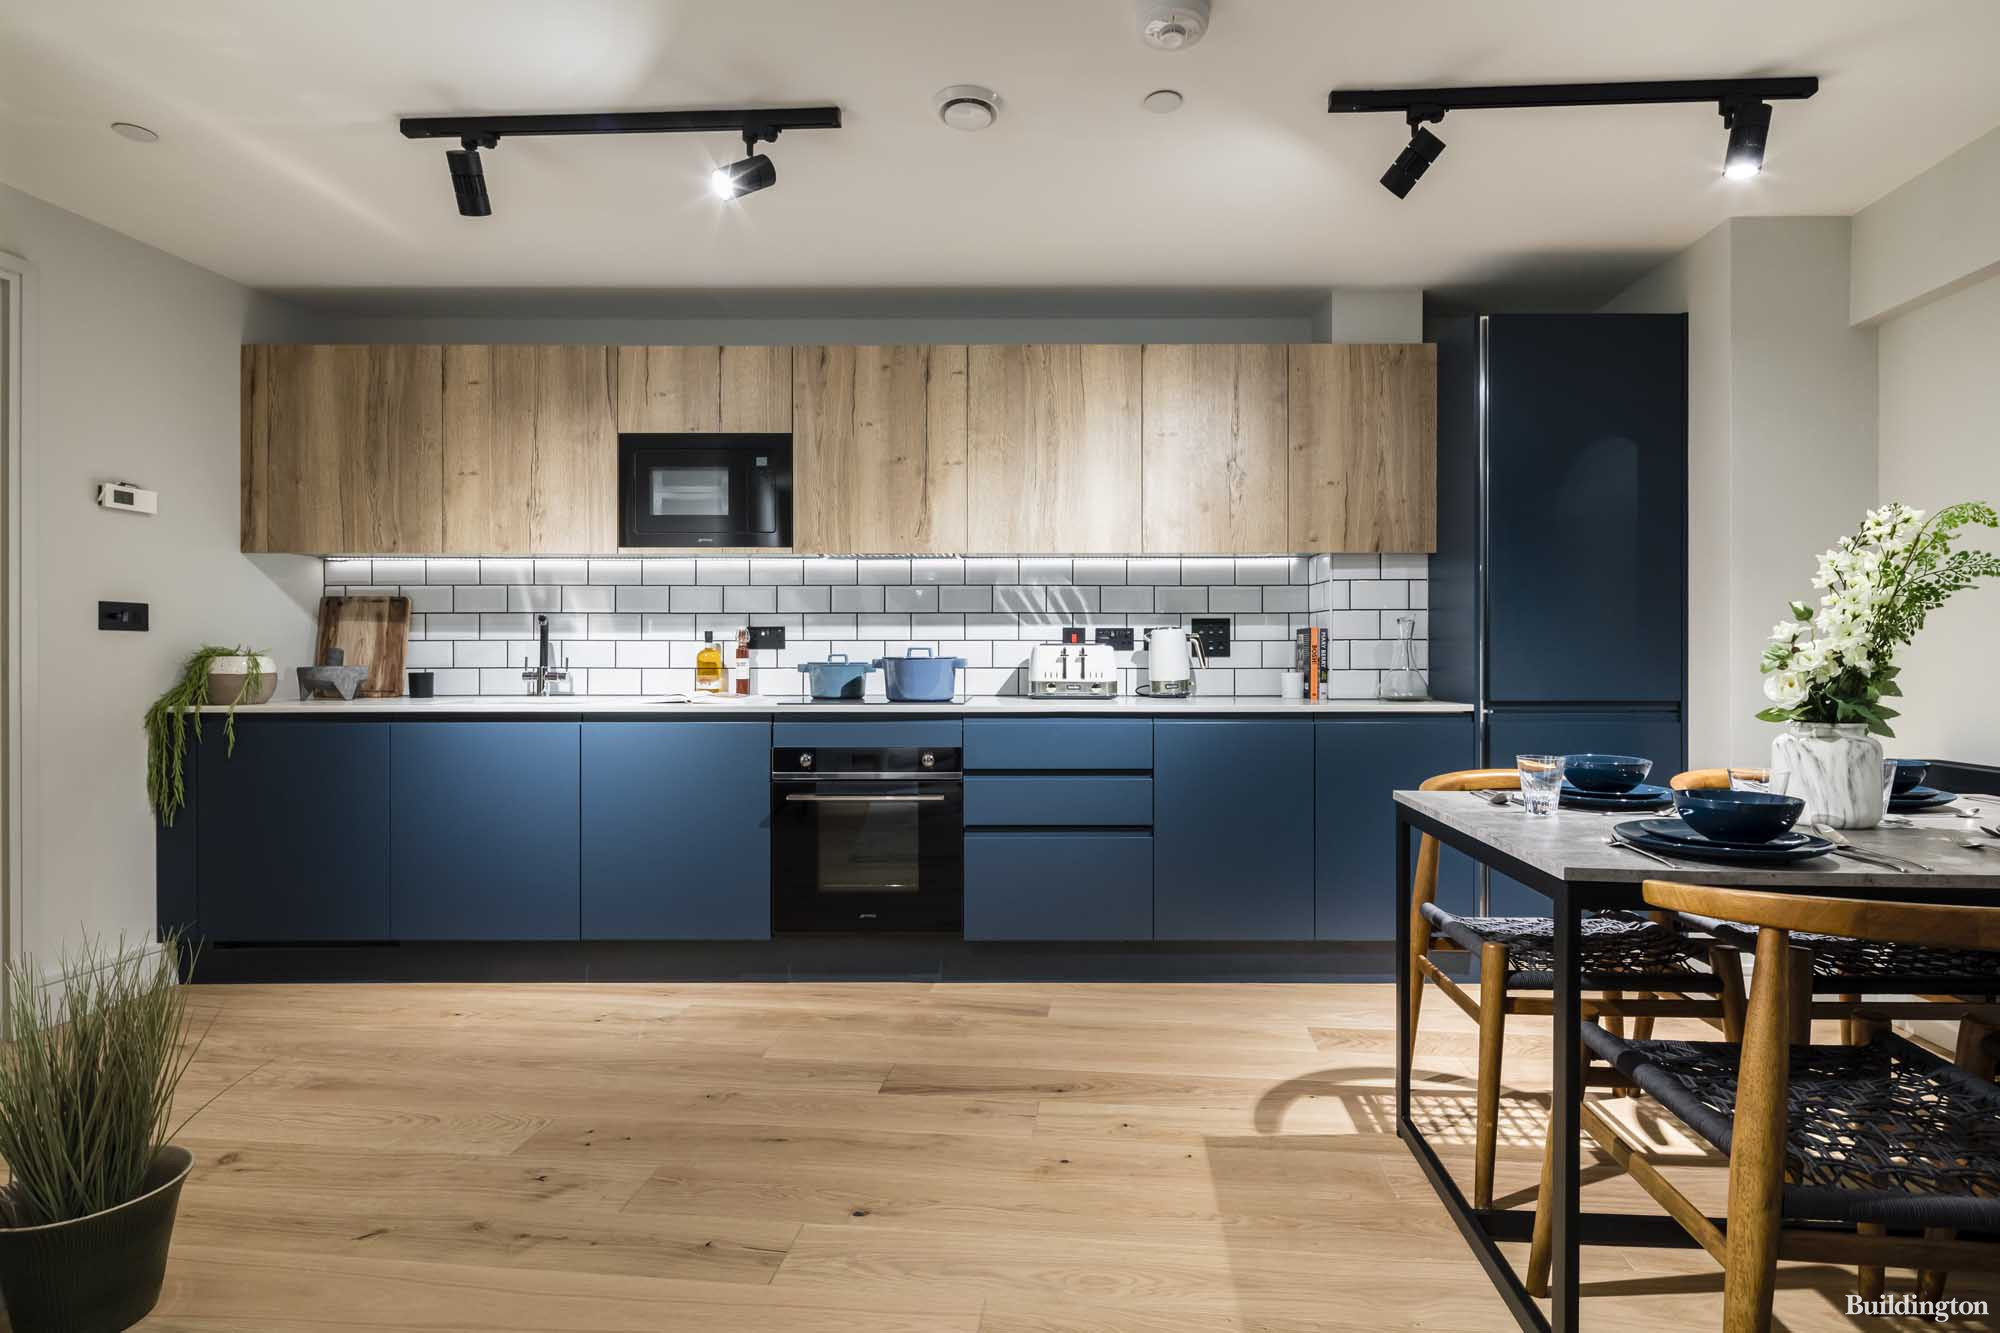 Fully fitted kitchen in one of the apartments at Newham's Yard development in Bermondsey, London SE1.